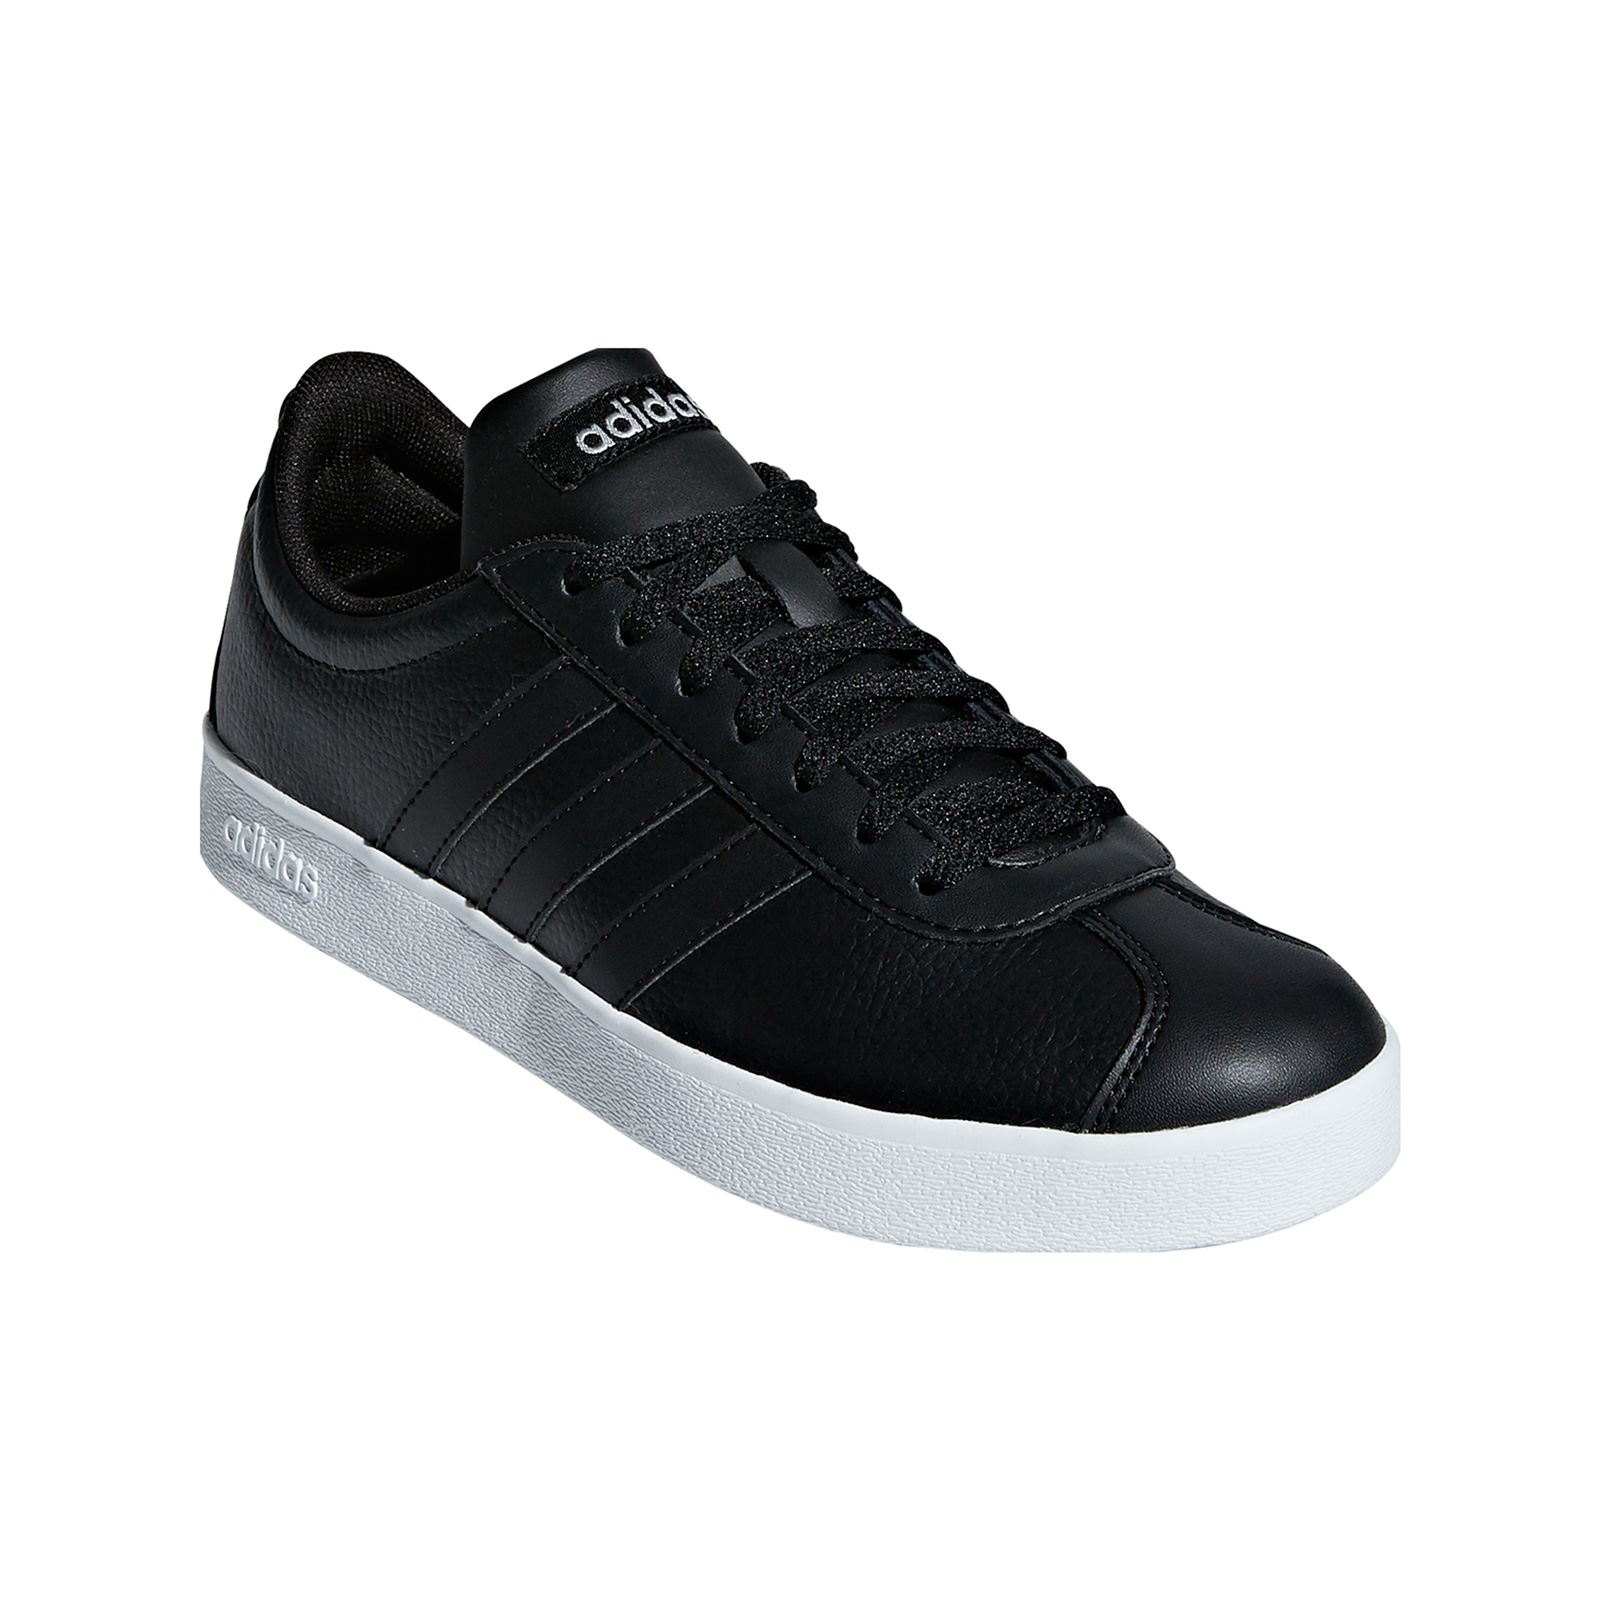 US $82.68 22% OFF|Original New Arrival Adidas NEO Label Men's Skateboarding Shoes Low Top Sneakers|adidas neo label|adidas neo|mens skateboarding